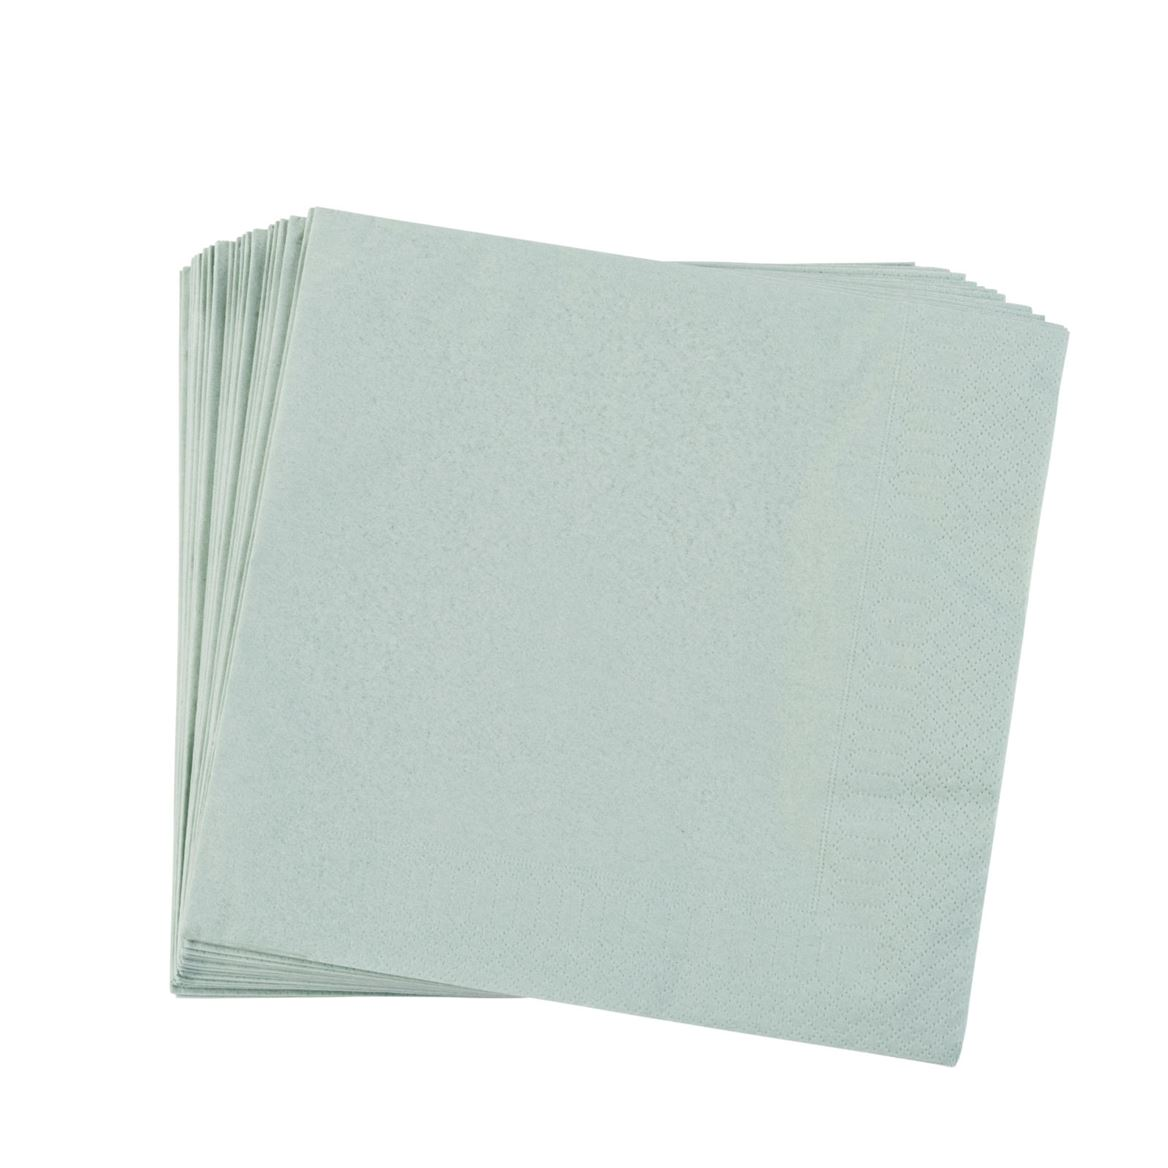 UNI Set de 20 serviettes vert clair Larg. 40 x Long. 40 cm_uni-set-de-20-serviettes-vert-clair-larg--40-x-long--40-cm